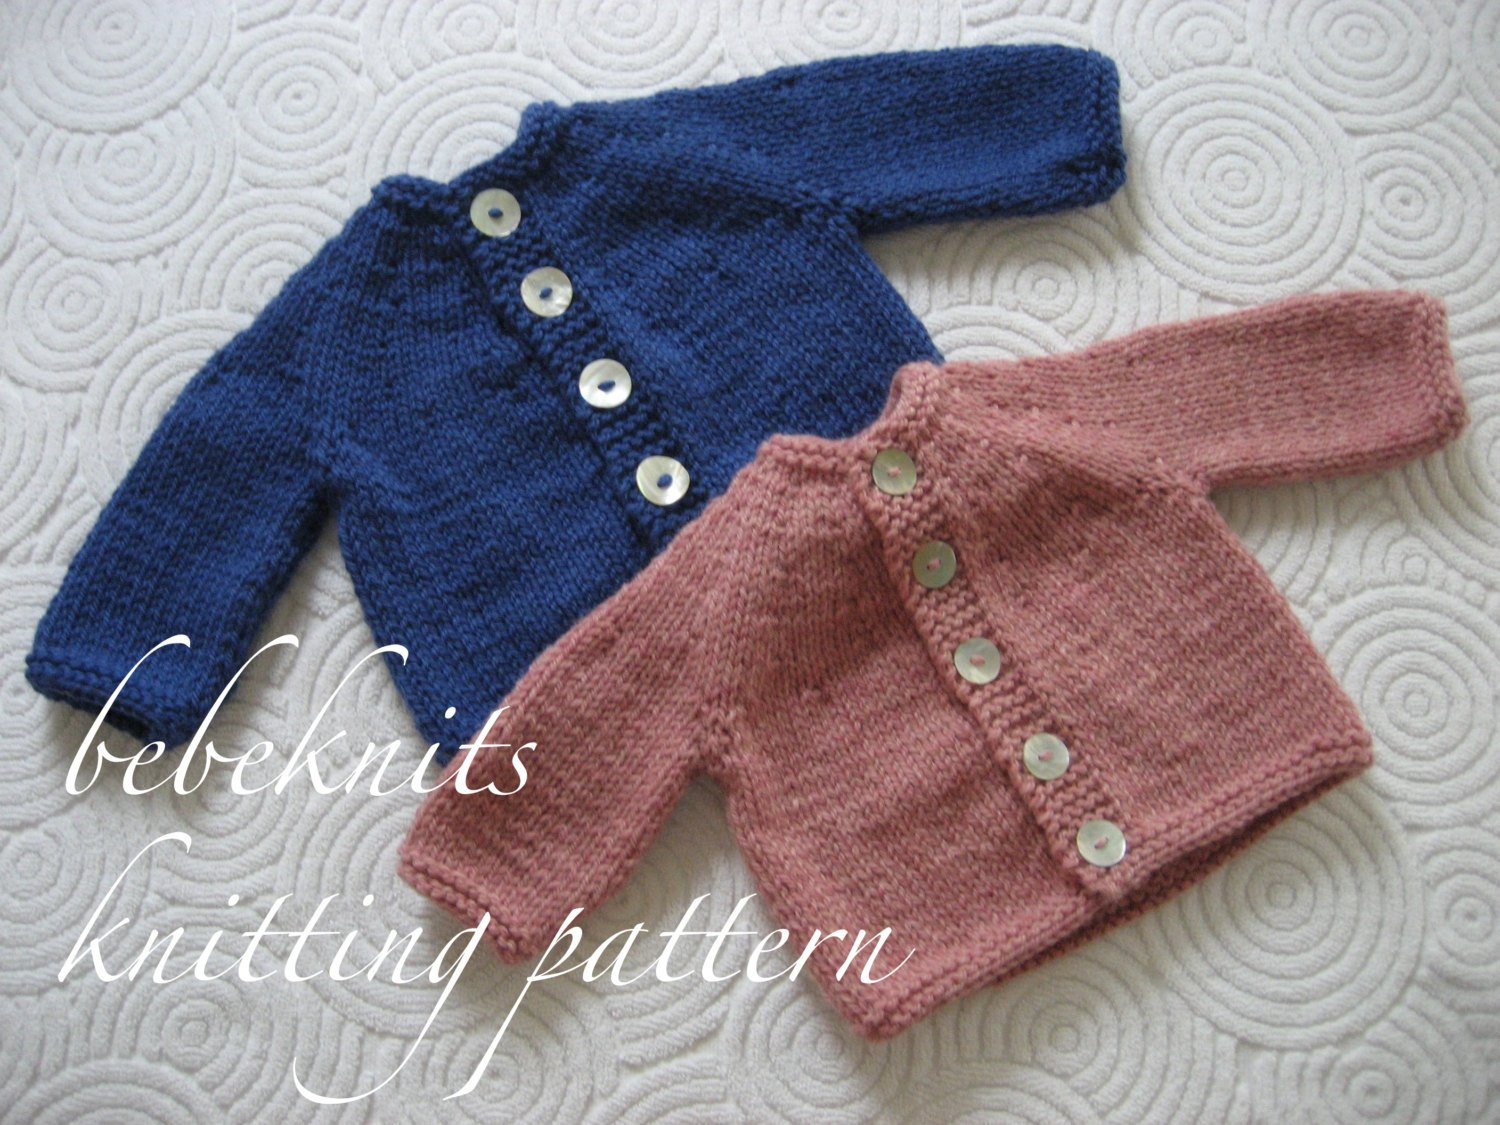 Baby Cardigan Knitting Pattern Awesome Bebeknits Simple Round Yoke Baby Cardigan Knitting Pattern Of Adorable 48 Pics Baby Cardigan Knitting Pattern